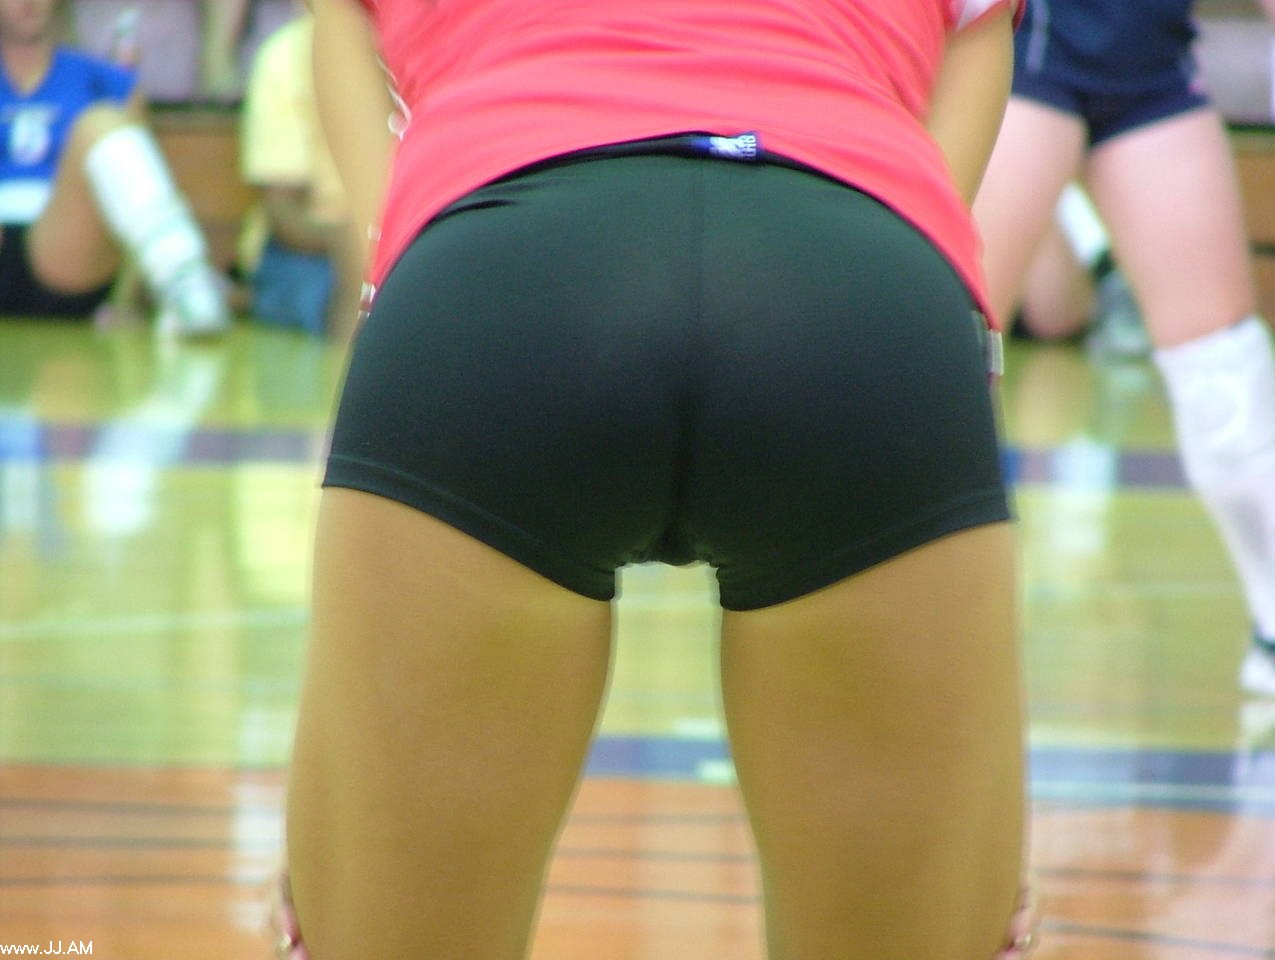 Girls volleyball shorts big butts for